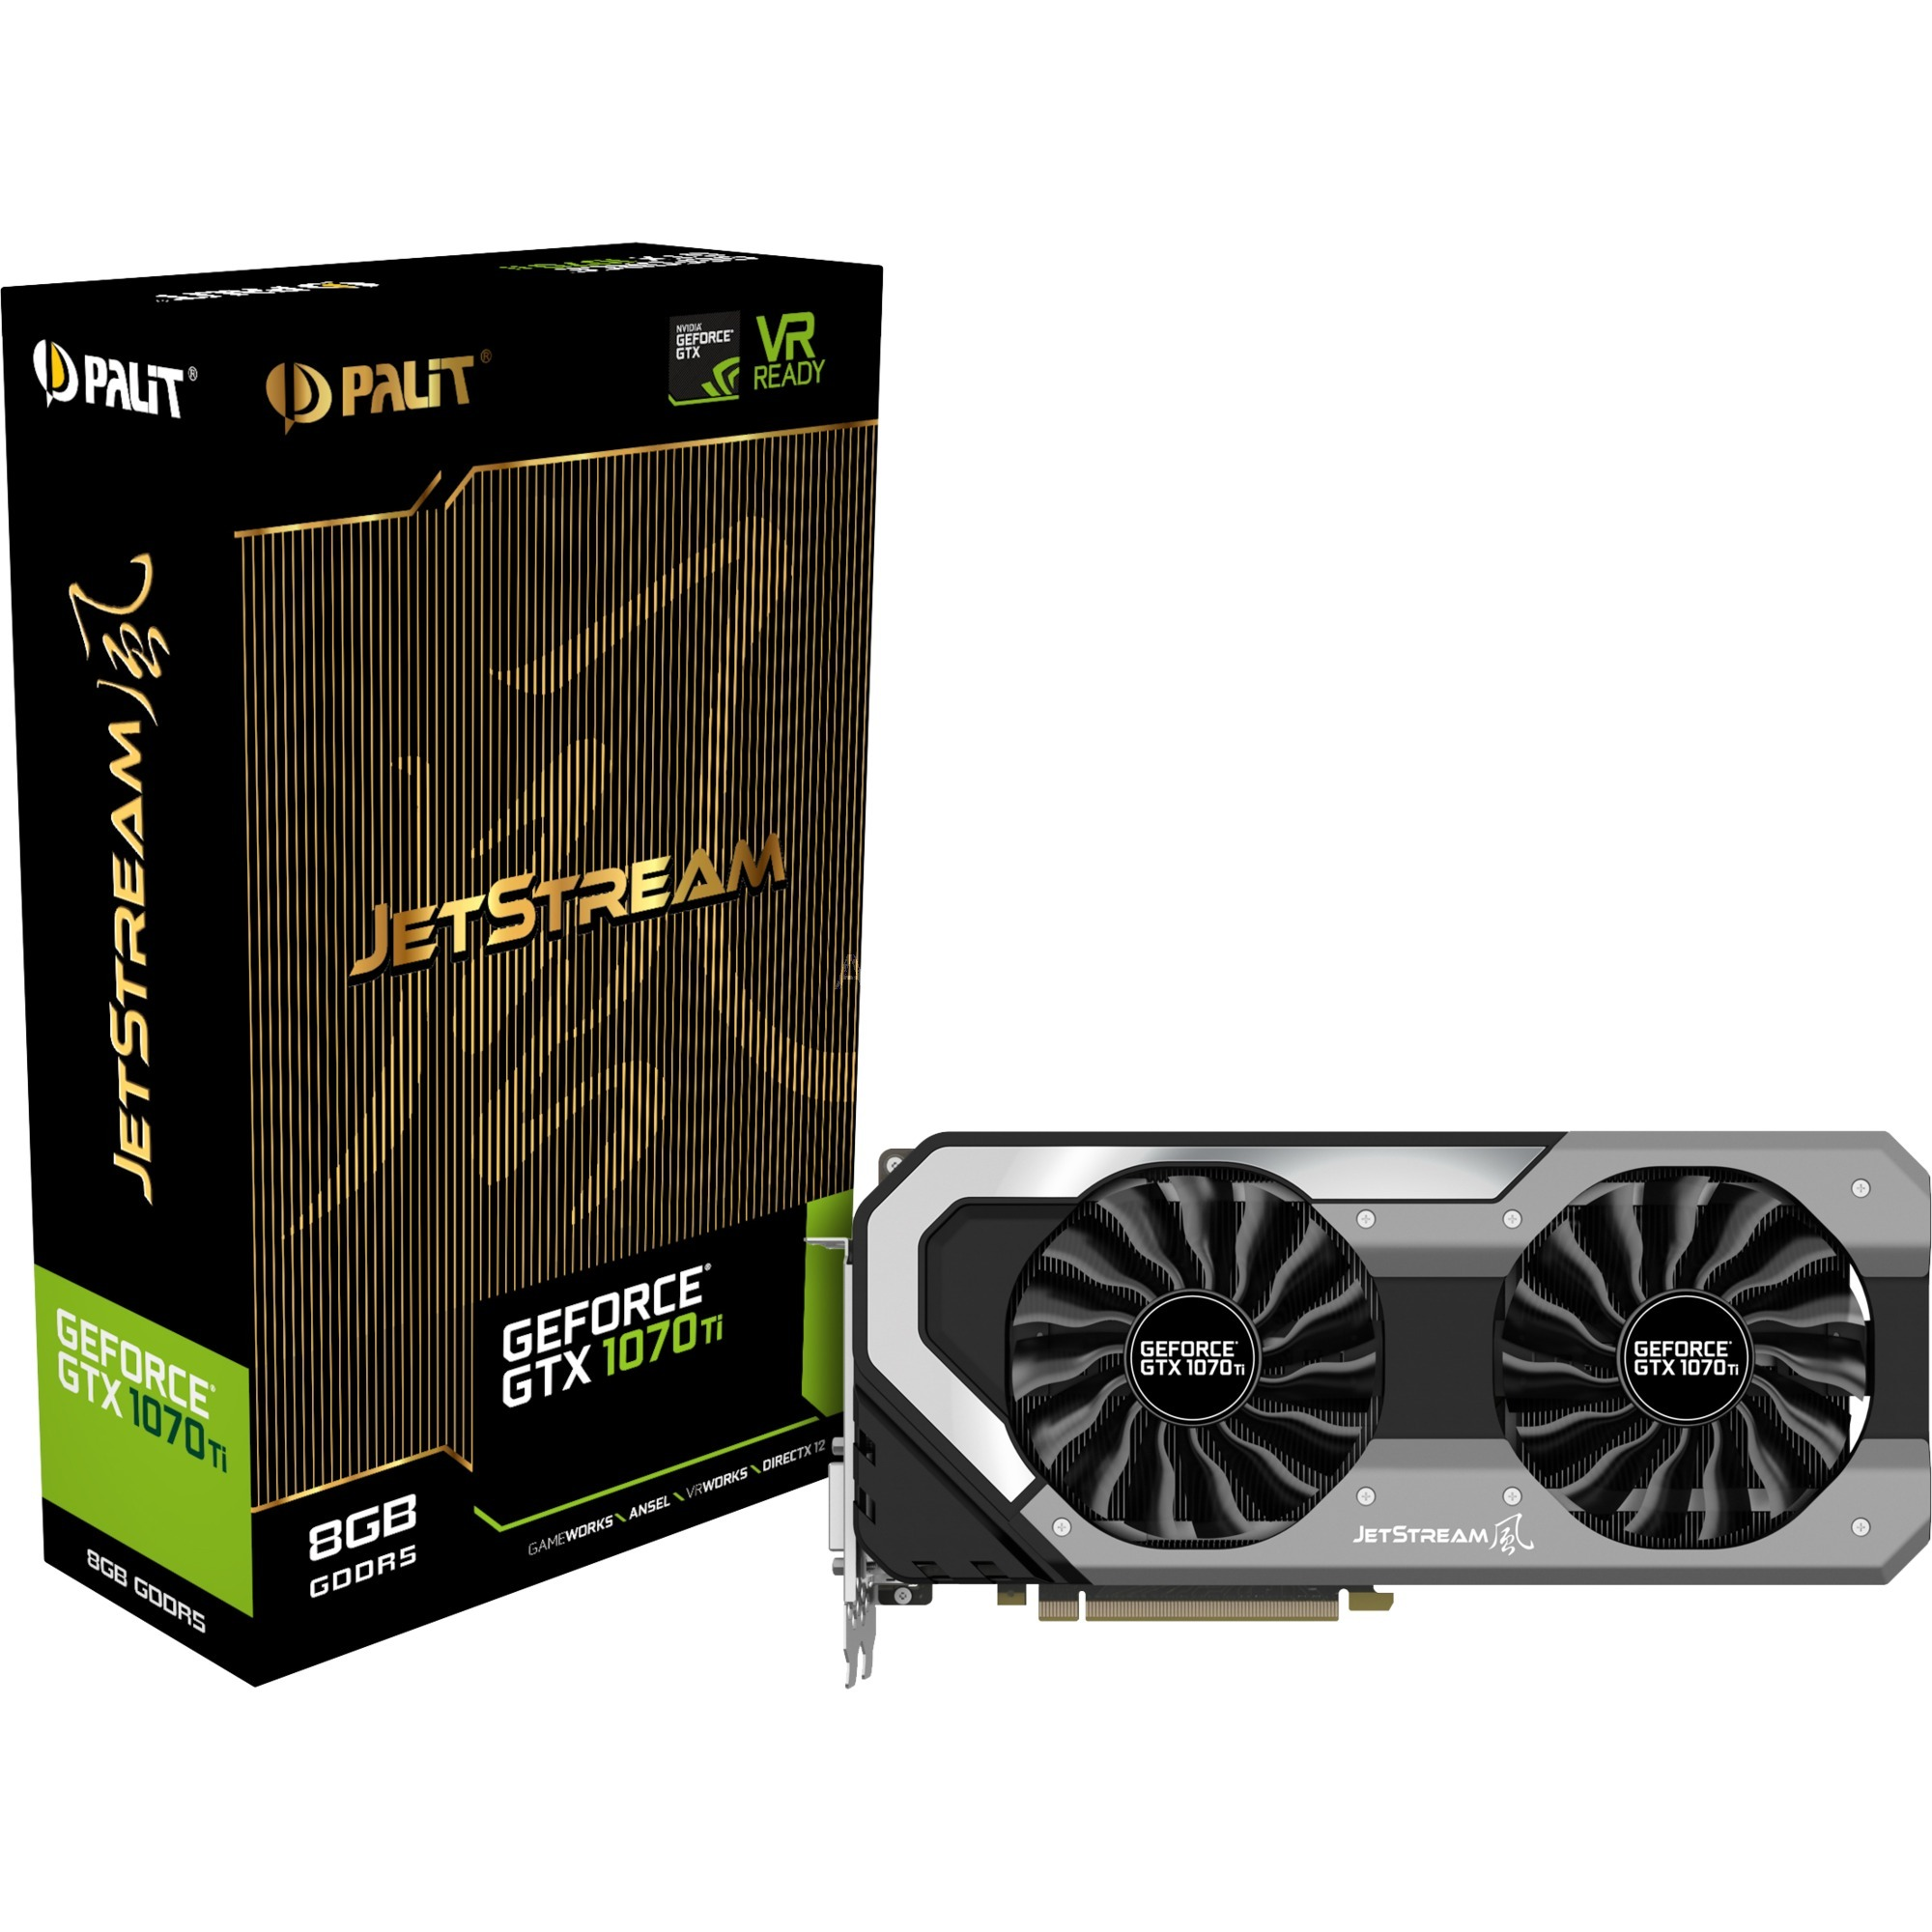 8Go D5 GTX 1070 Ti Jetstream, Carte graphique